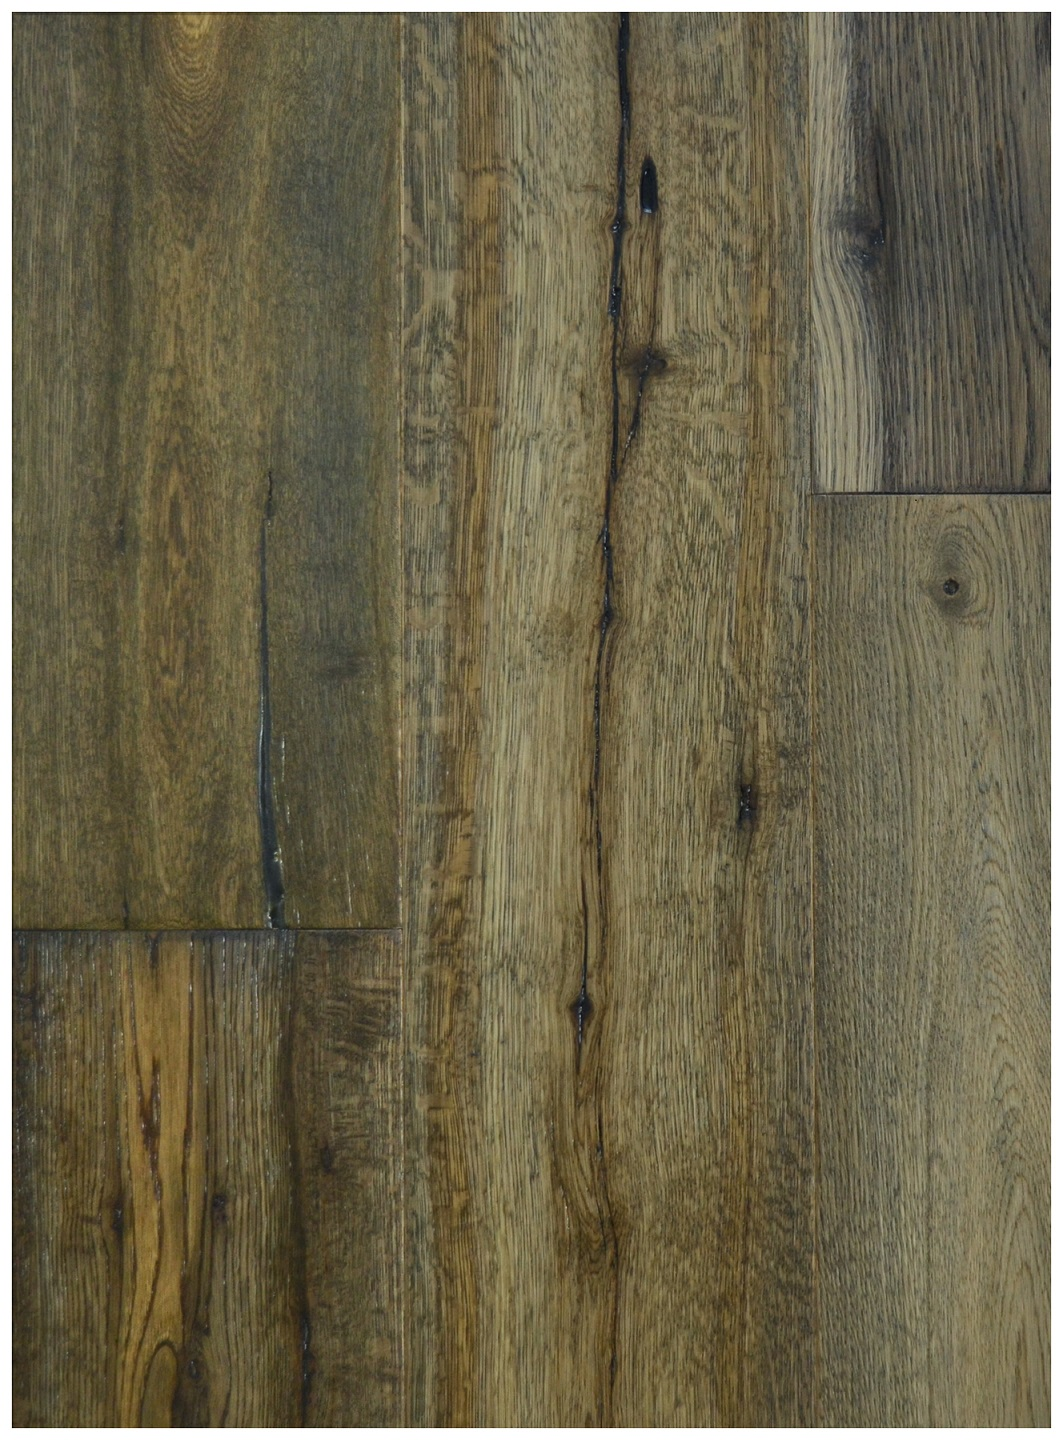 Masland Carpet Lm Flooring Nature Reserve Caribou Hardwood Flooring 7 1/4